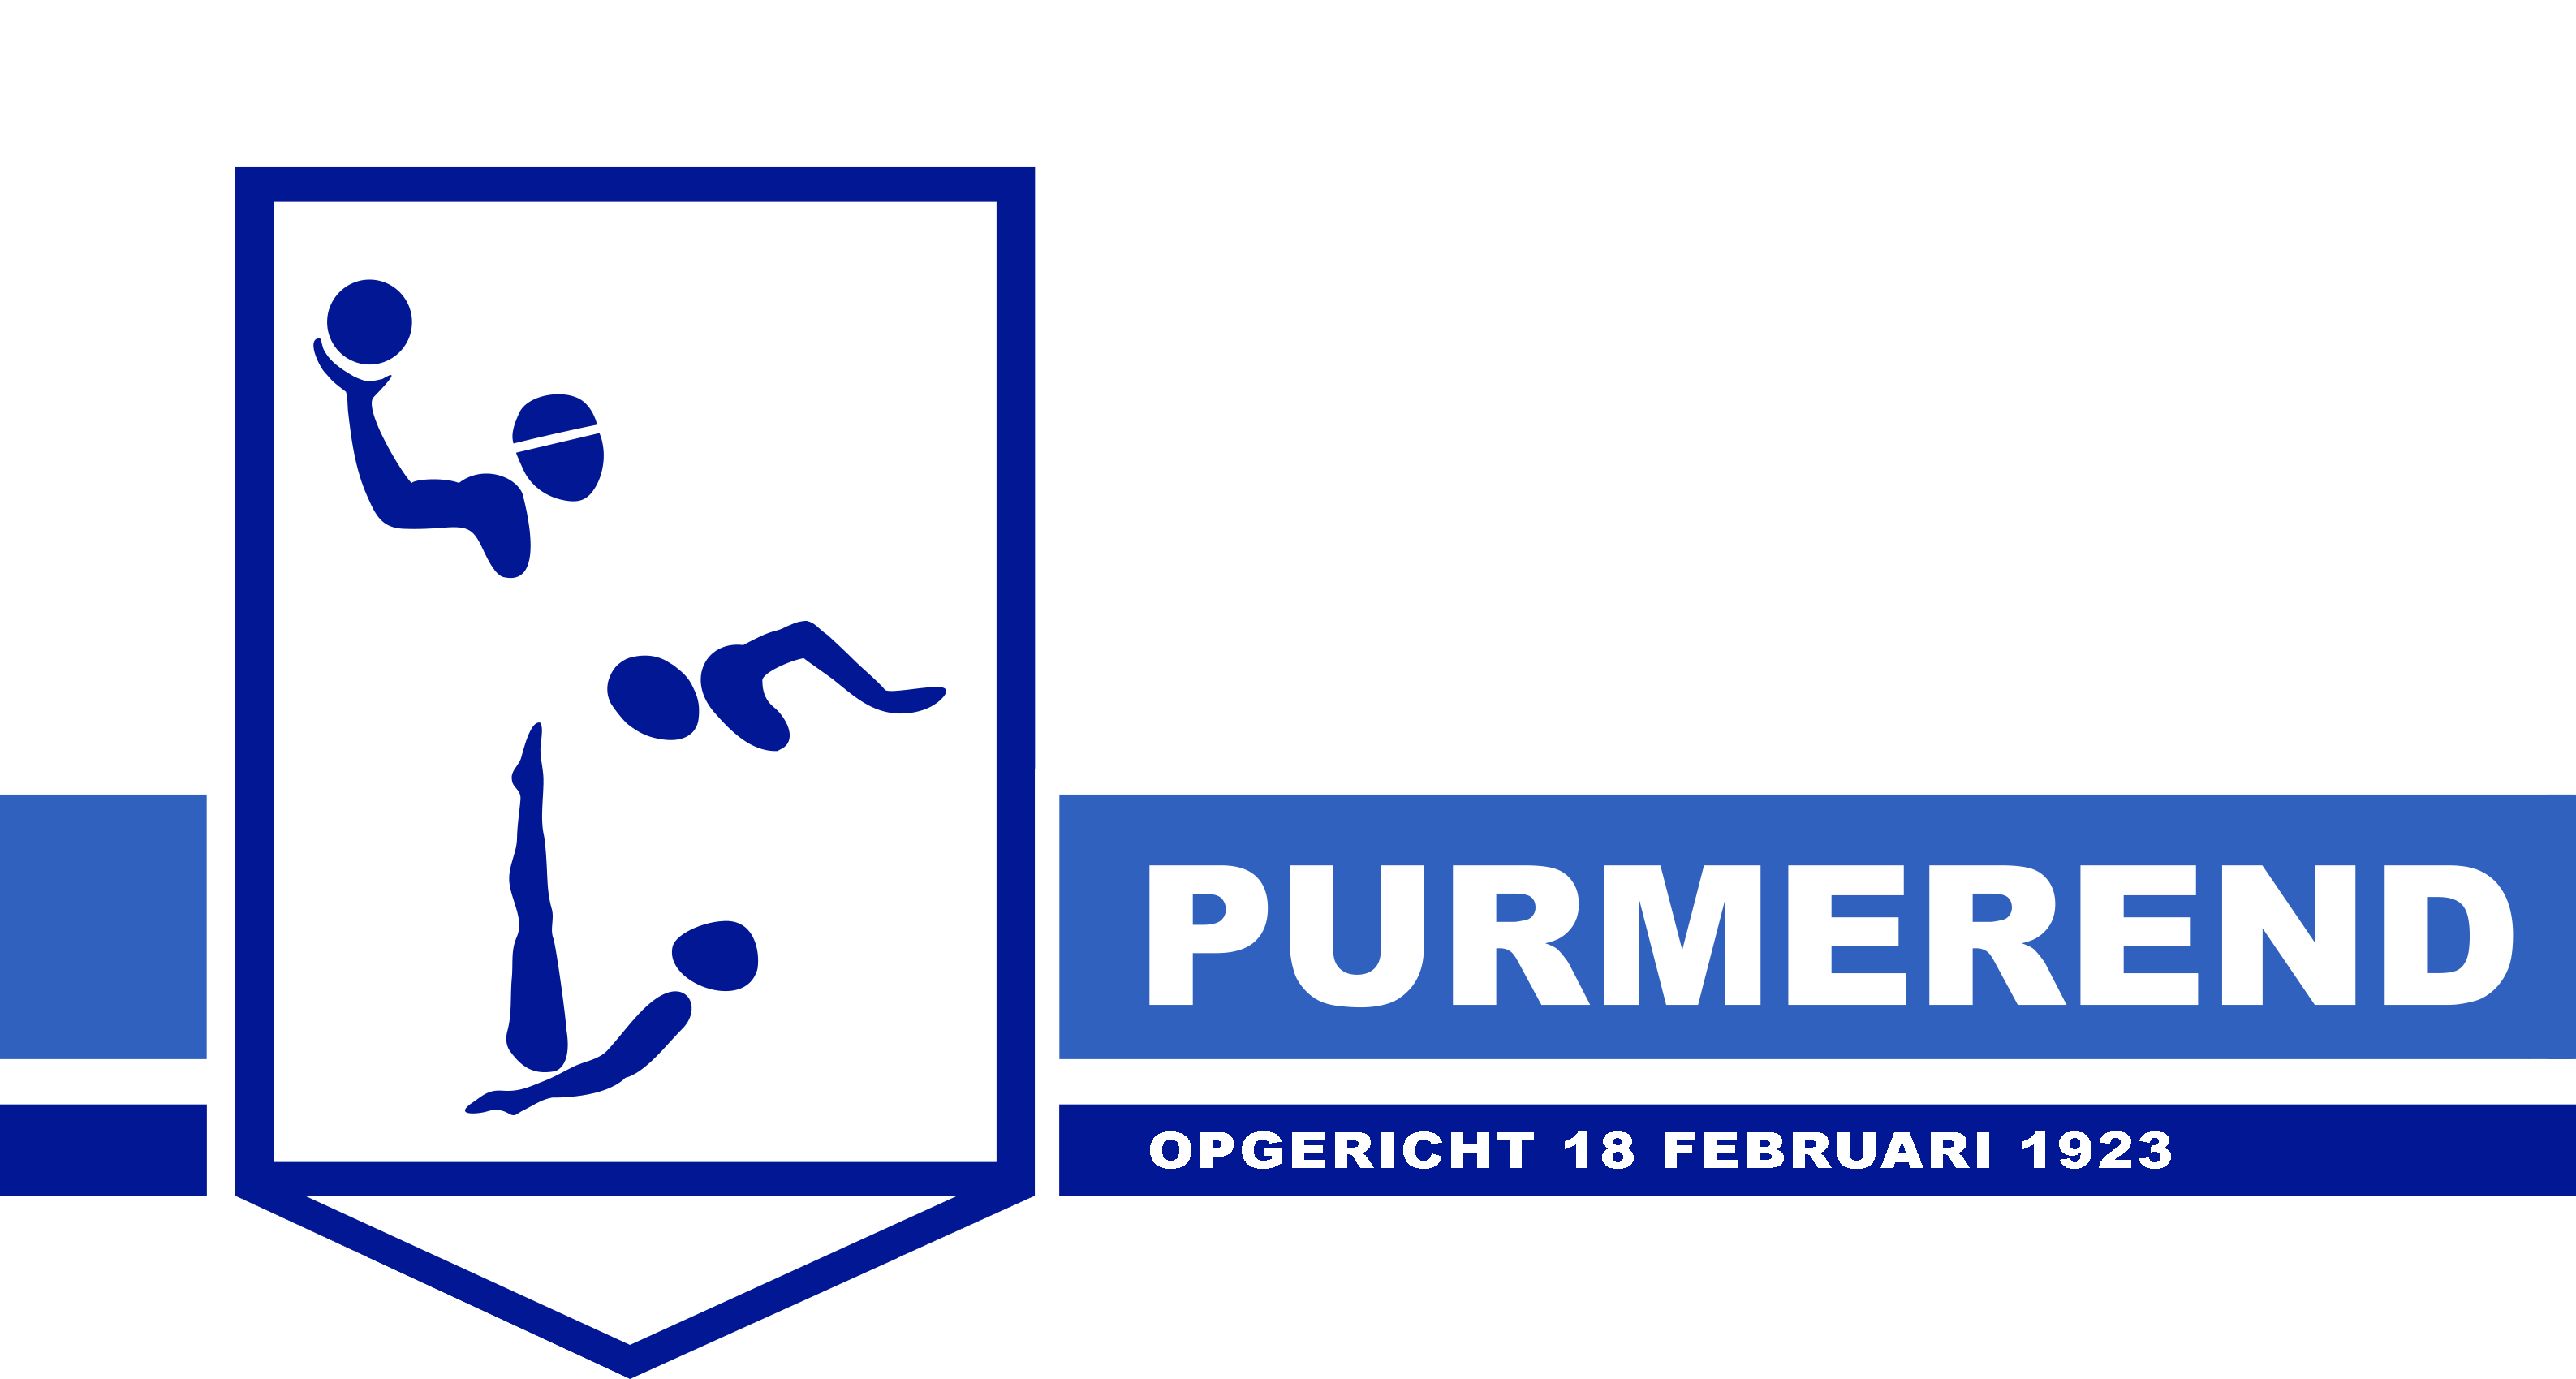 WZ&PC Purmerend